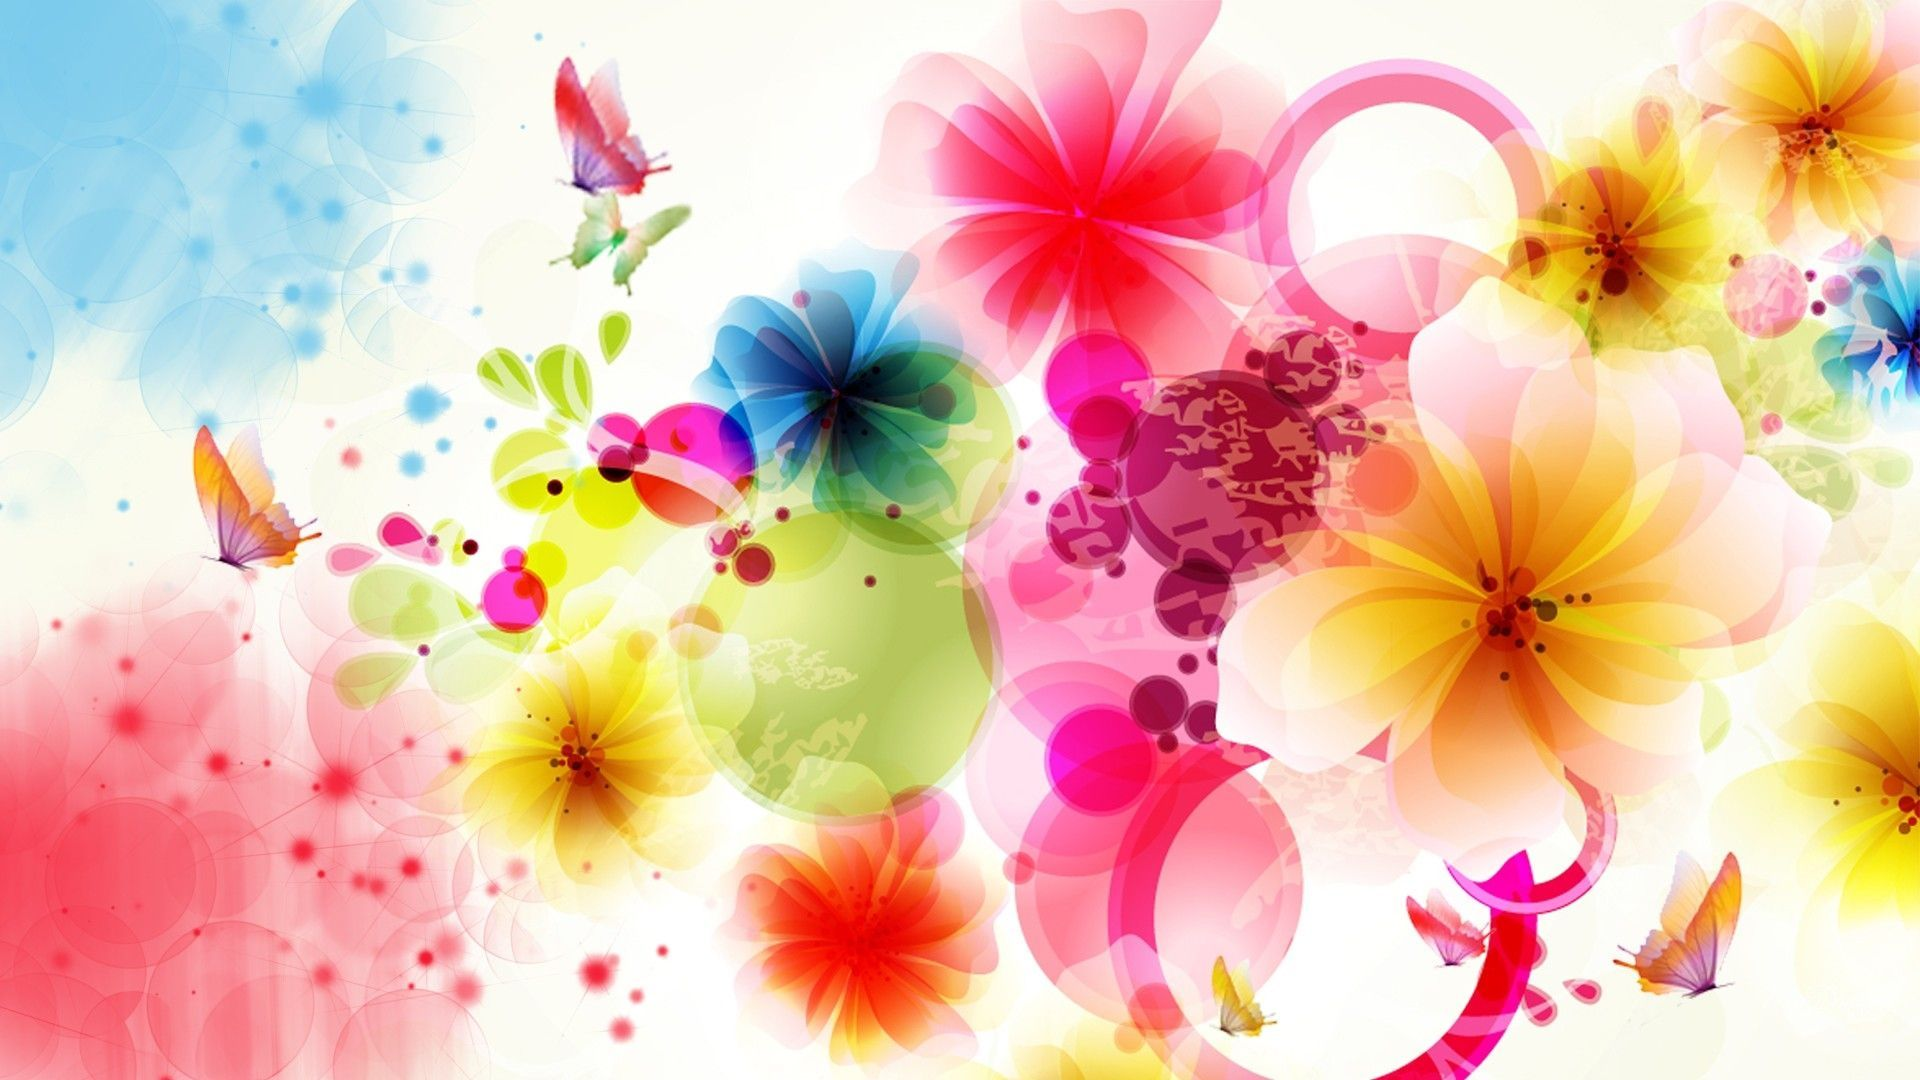 3d Abstract Flower Wallpaper For Iphone